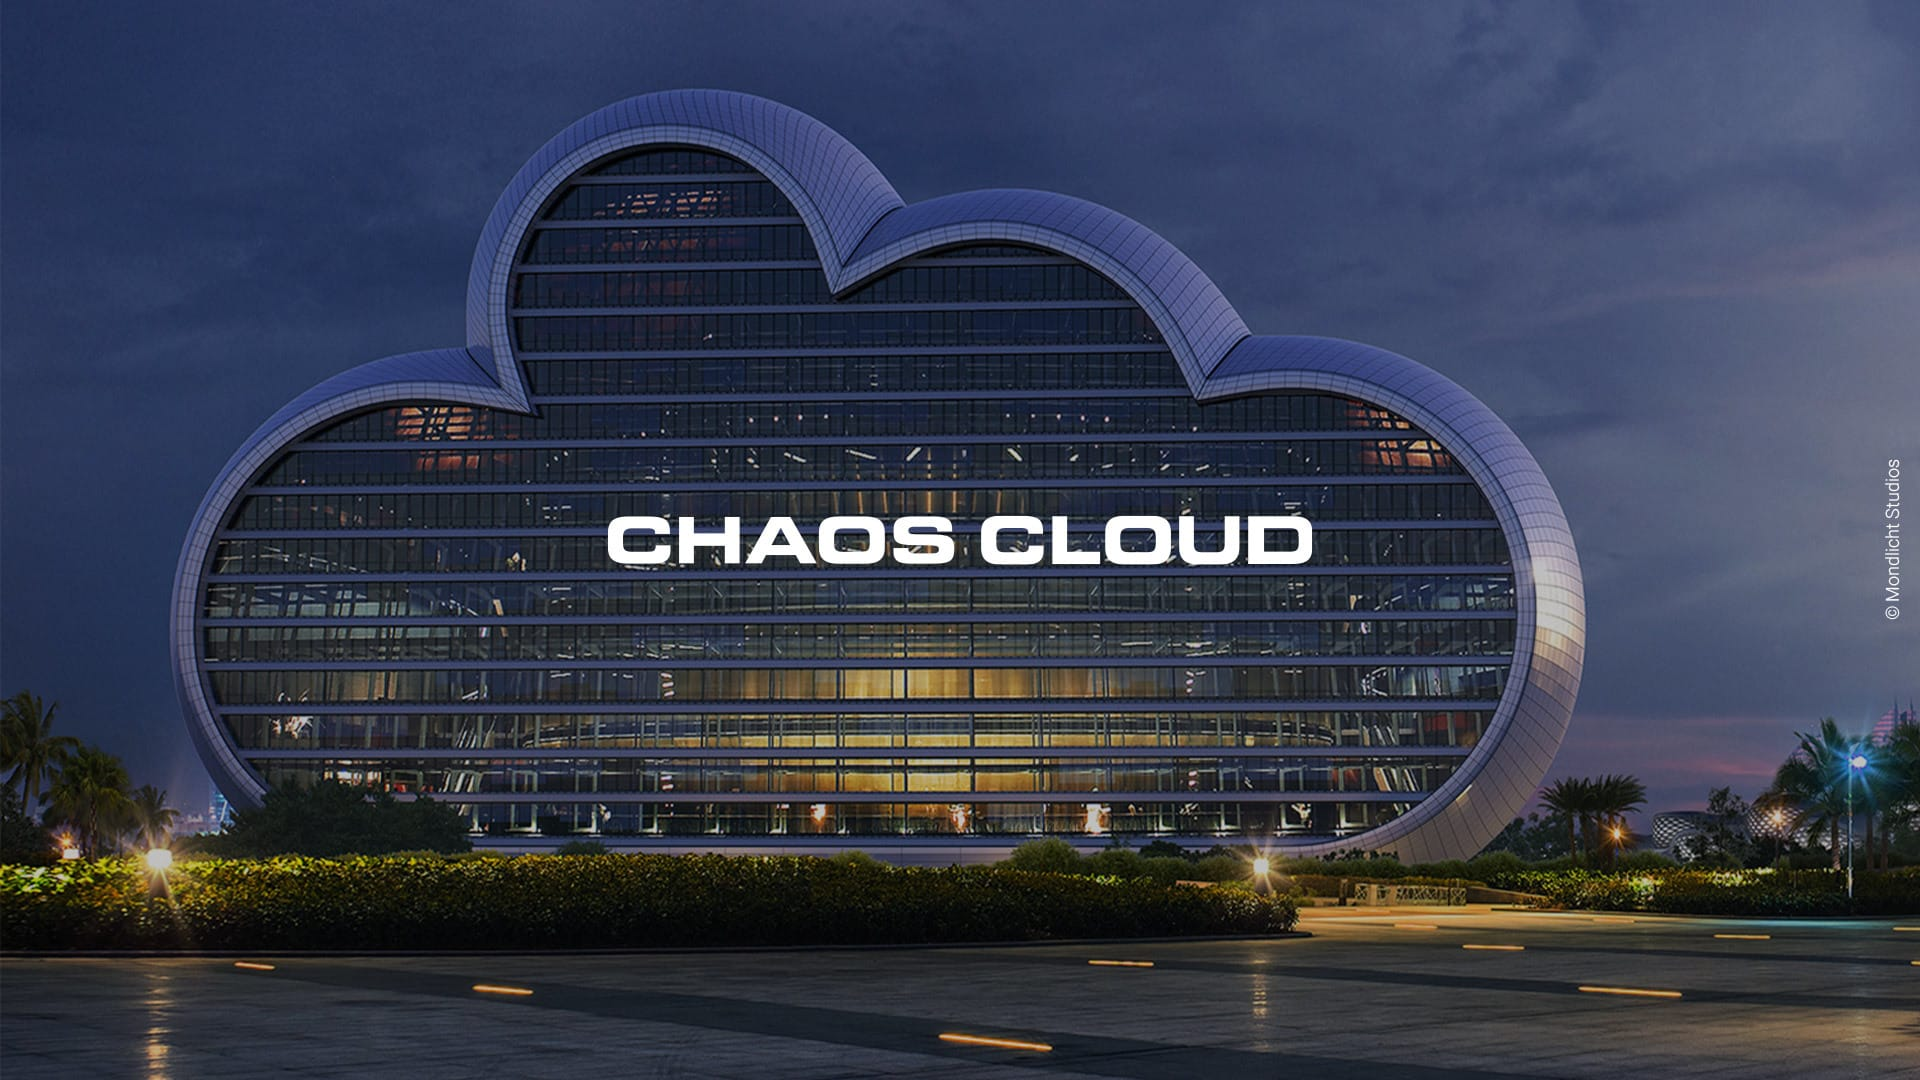 CHAOS CLOUD UPDATED